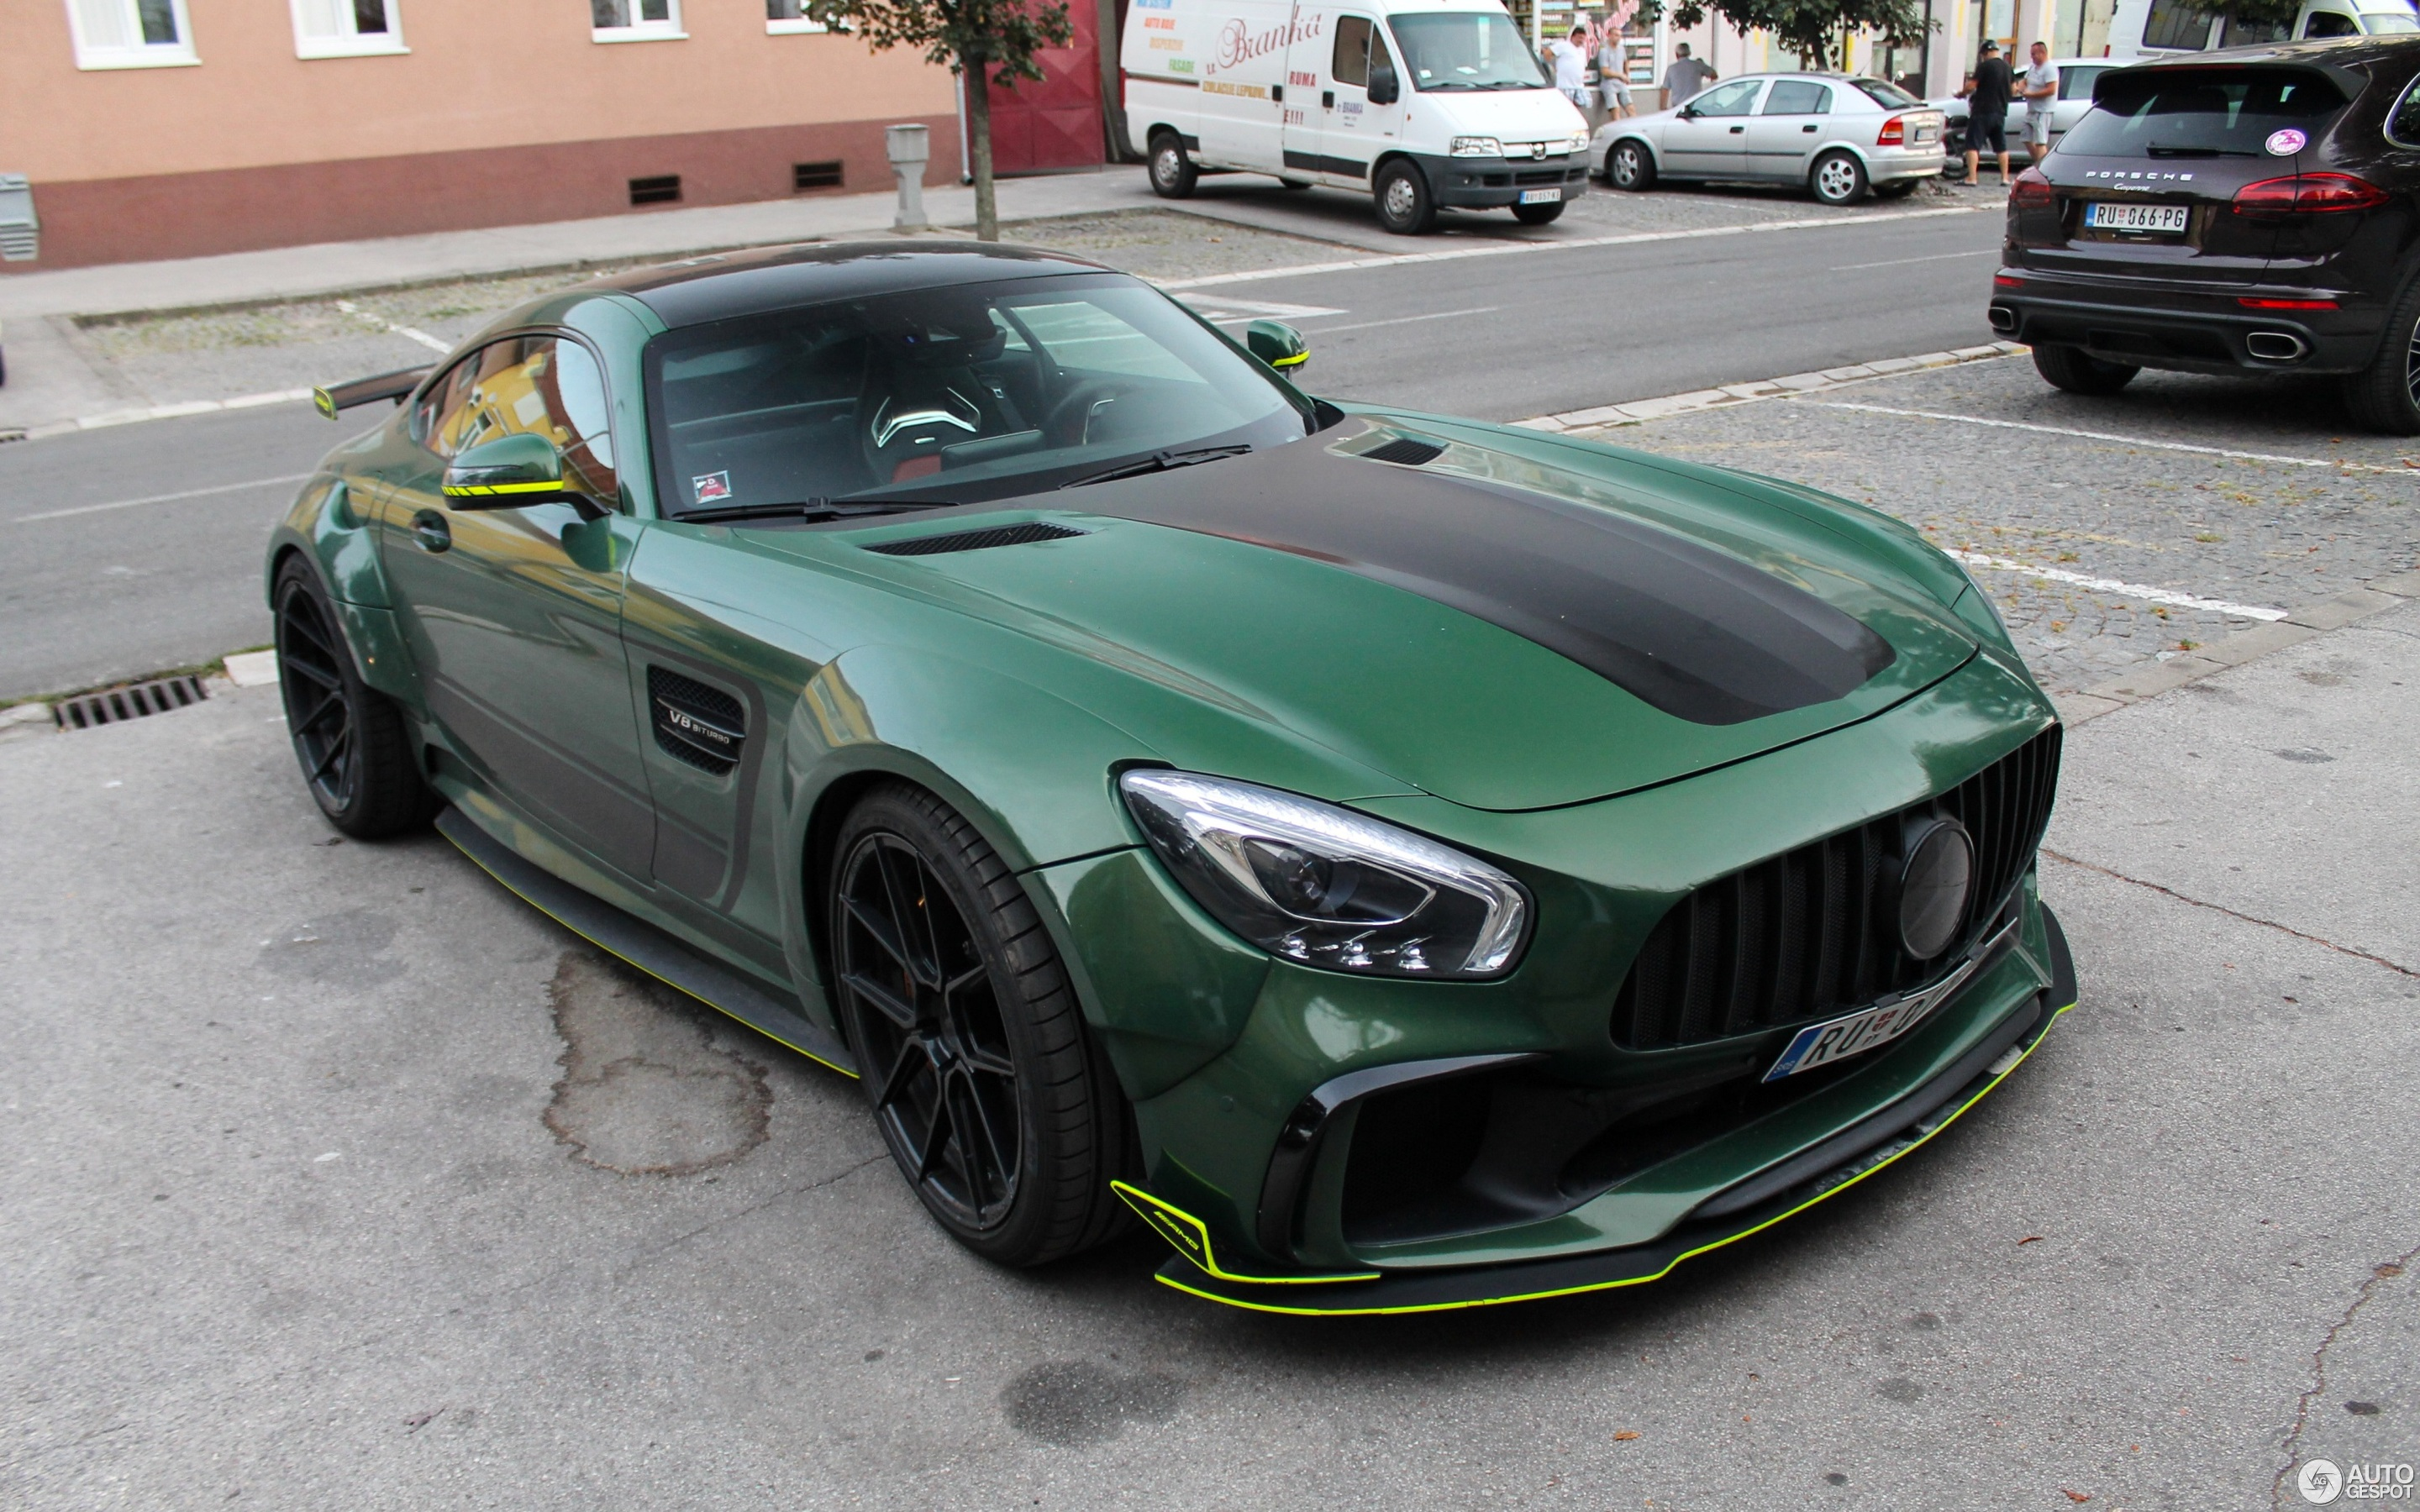 Amg Gt R >> Mercedes Amg Gt S Pd700 Gtr Prior Design 22 August 2019